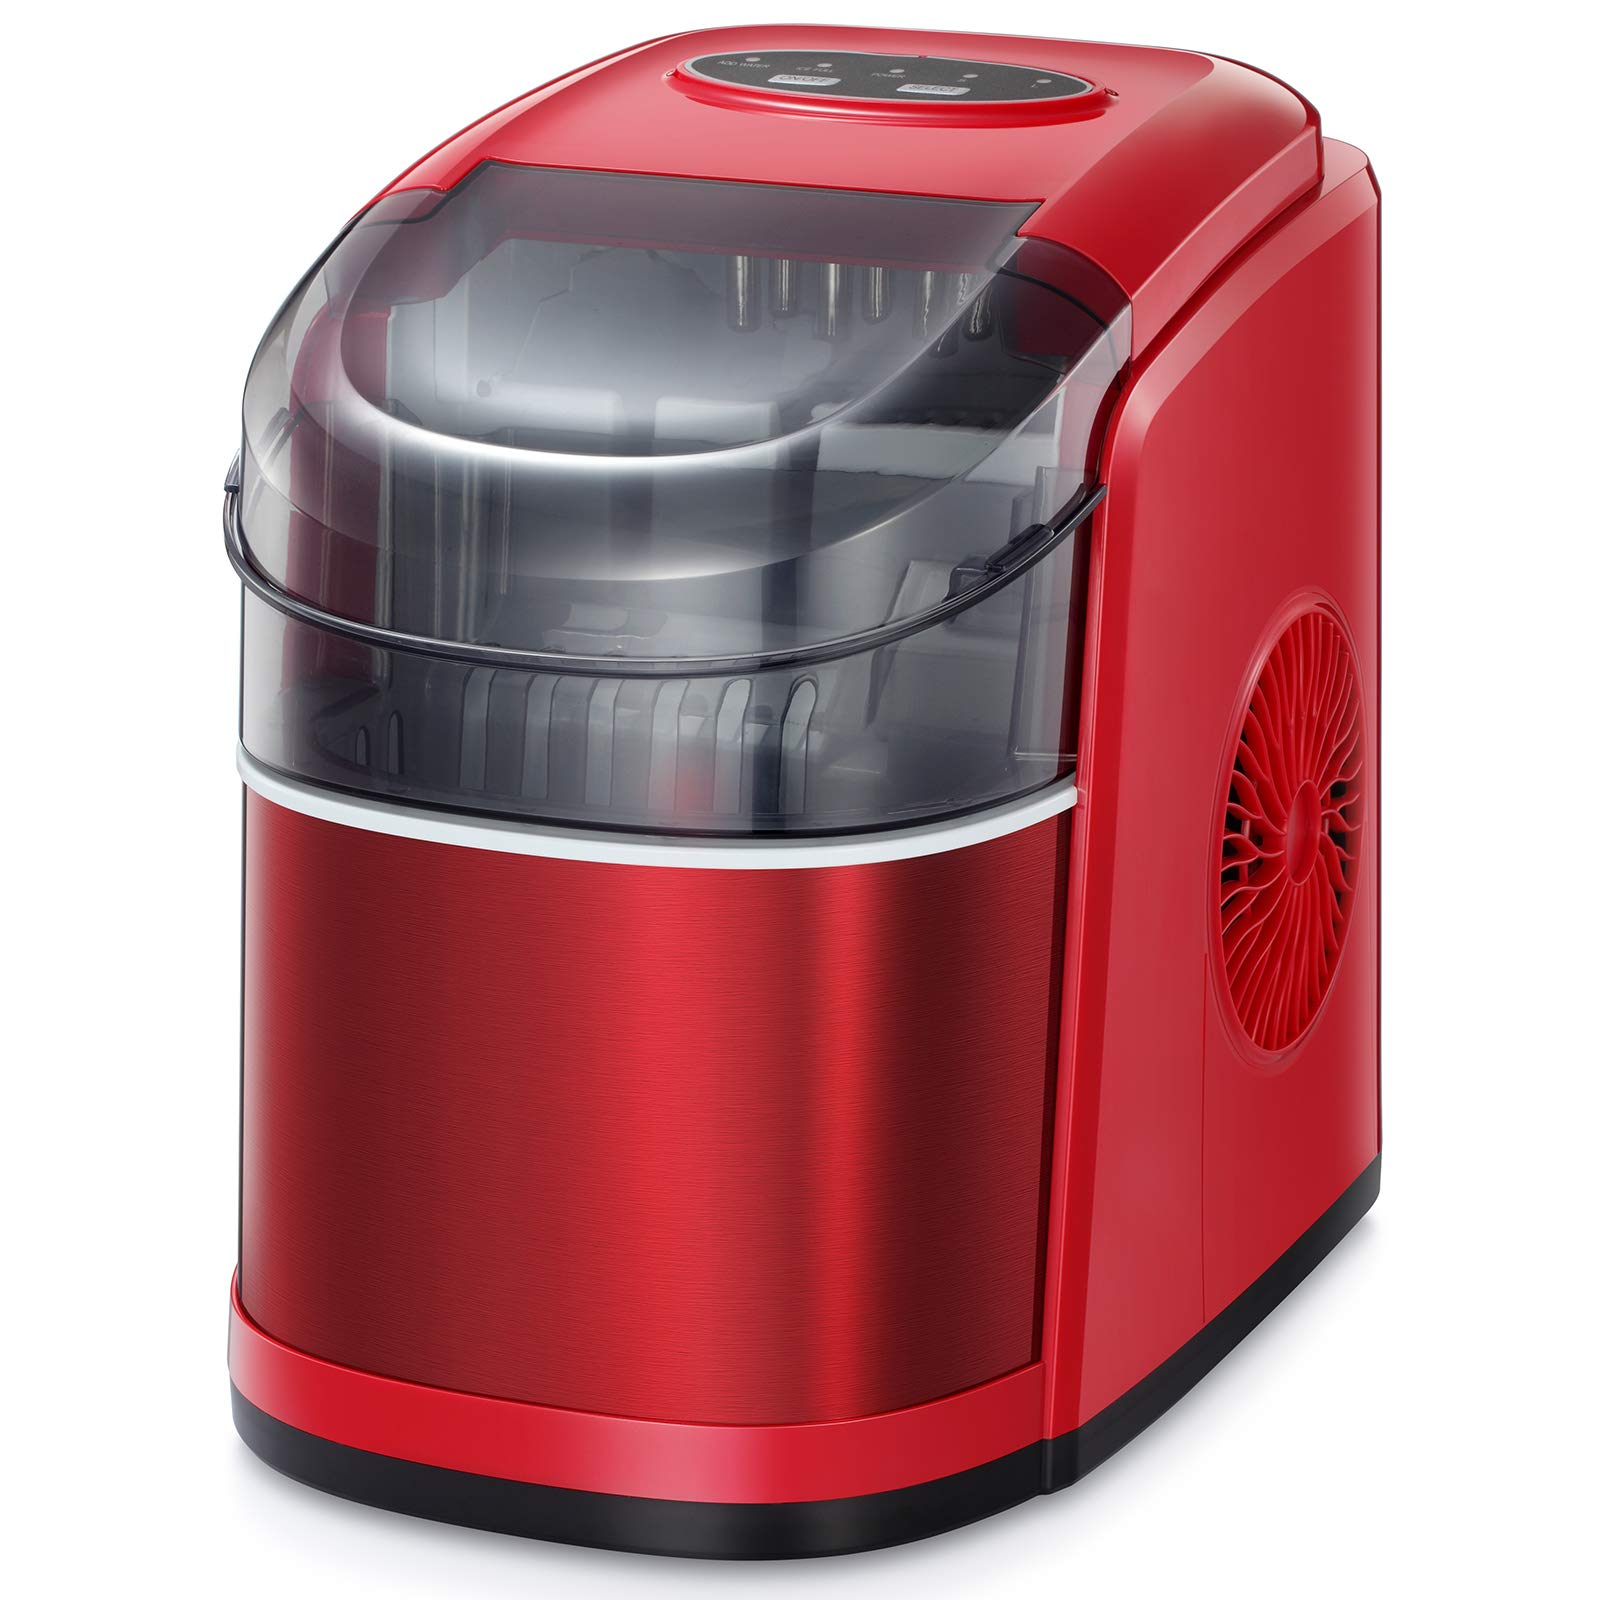 Kismile Countertop Ice Maker Machine,26Lbs/24H Compact Automatic Ice Makers,9 Cubes Ready in 6-8 Minutes,Portable Ice Cube Maker with self-cleaning program (Red)